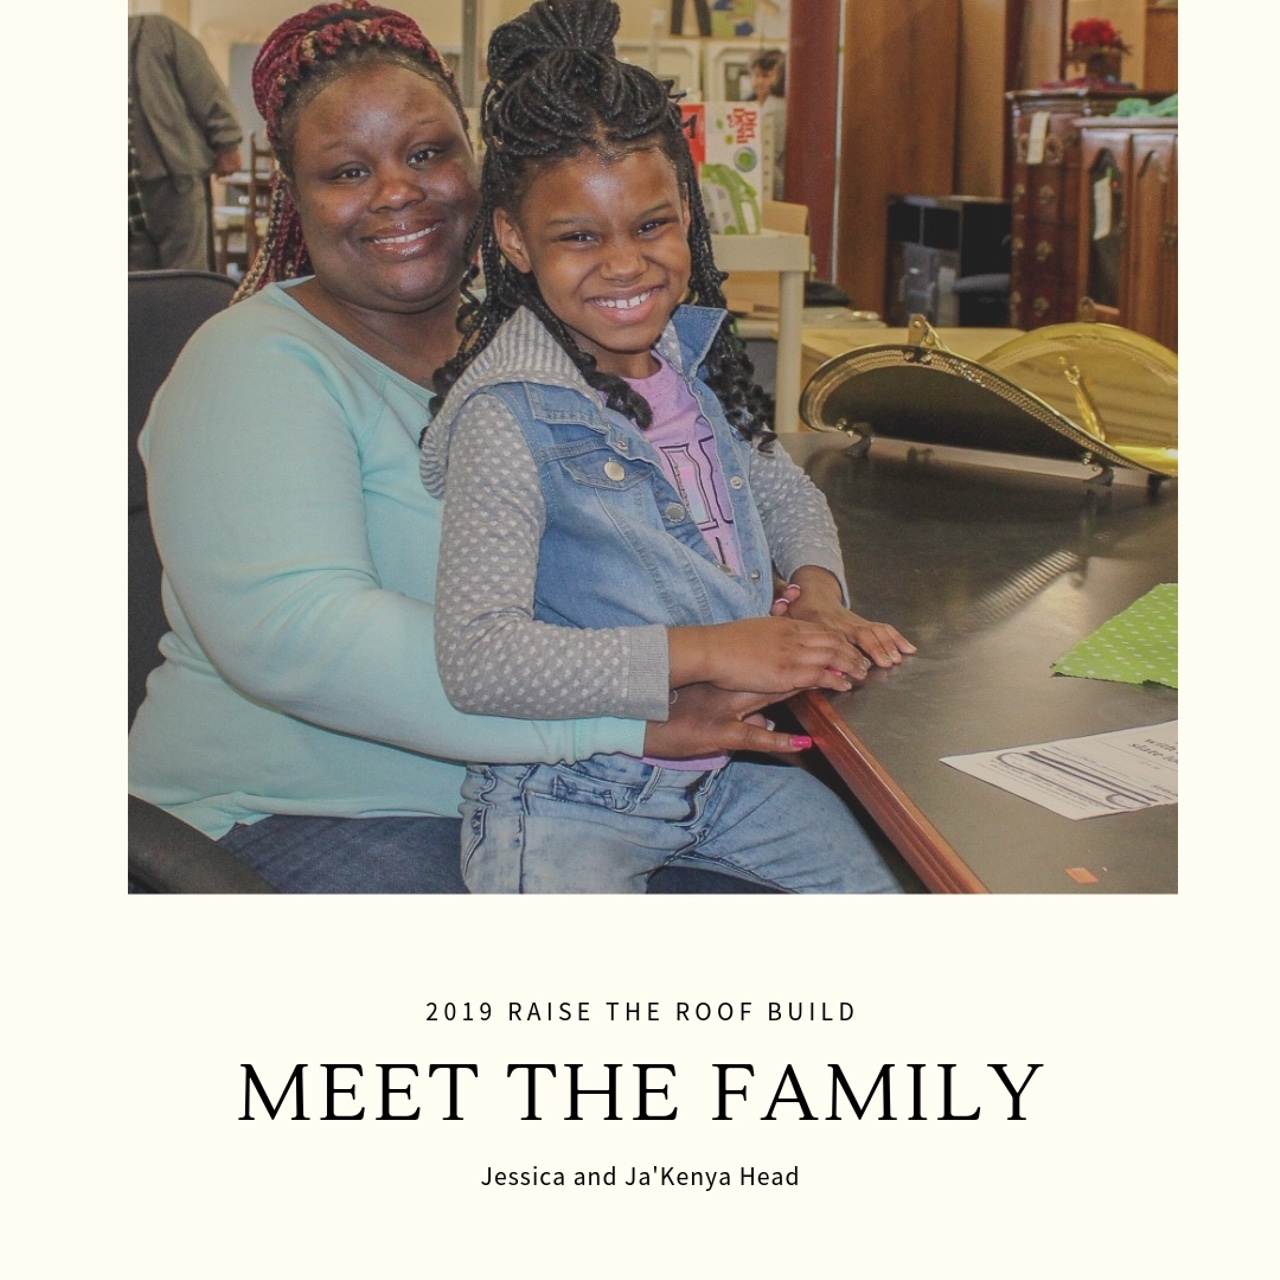 Meet the 2019 Raise the Roof Partner Family